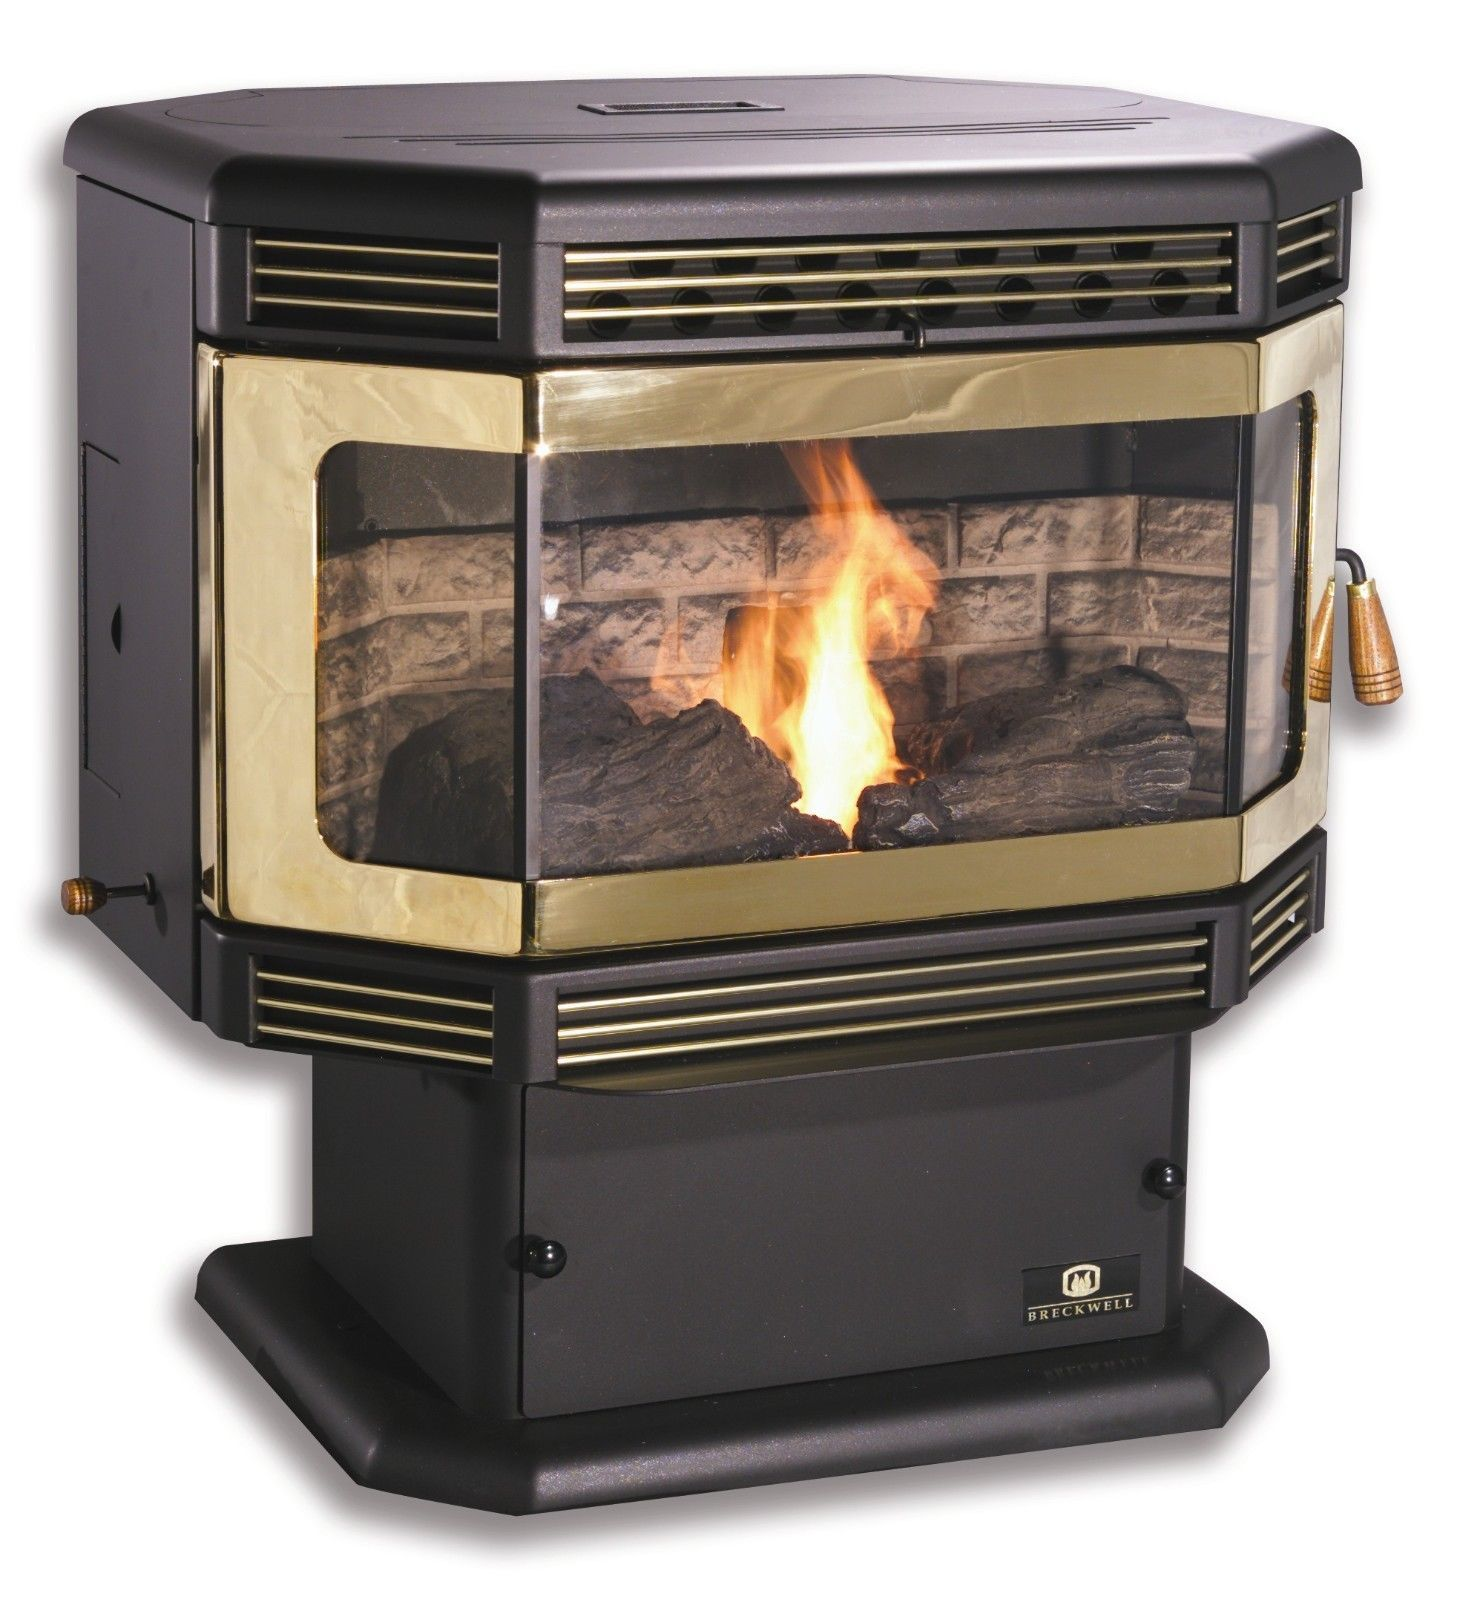 Sp2000pd Breckwell Free Standing Pellet Stove Pellet Stove Stove Hearth